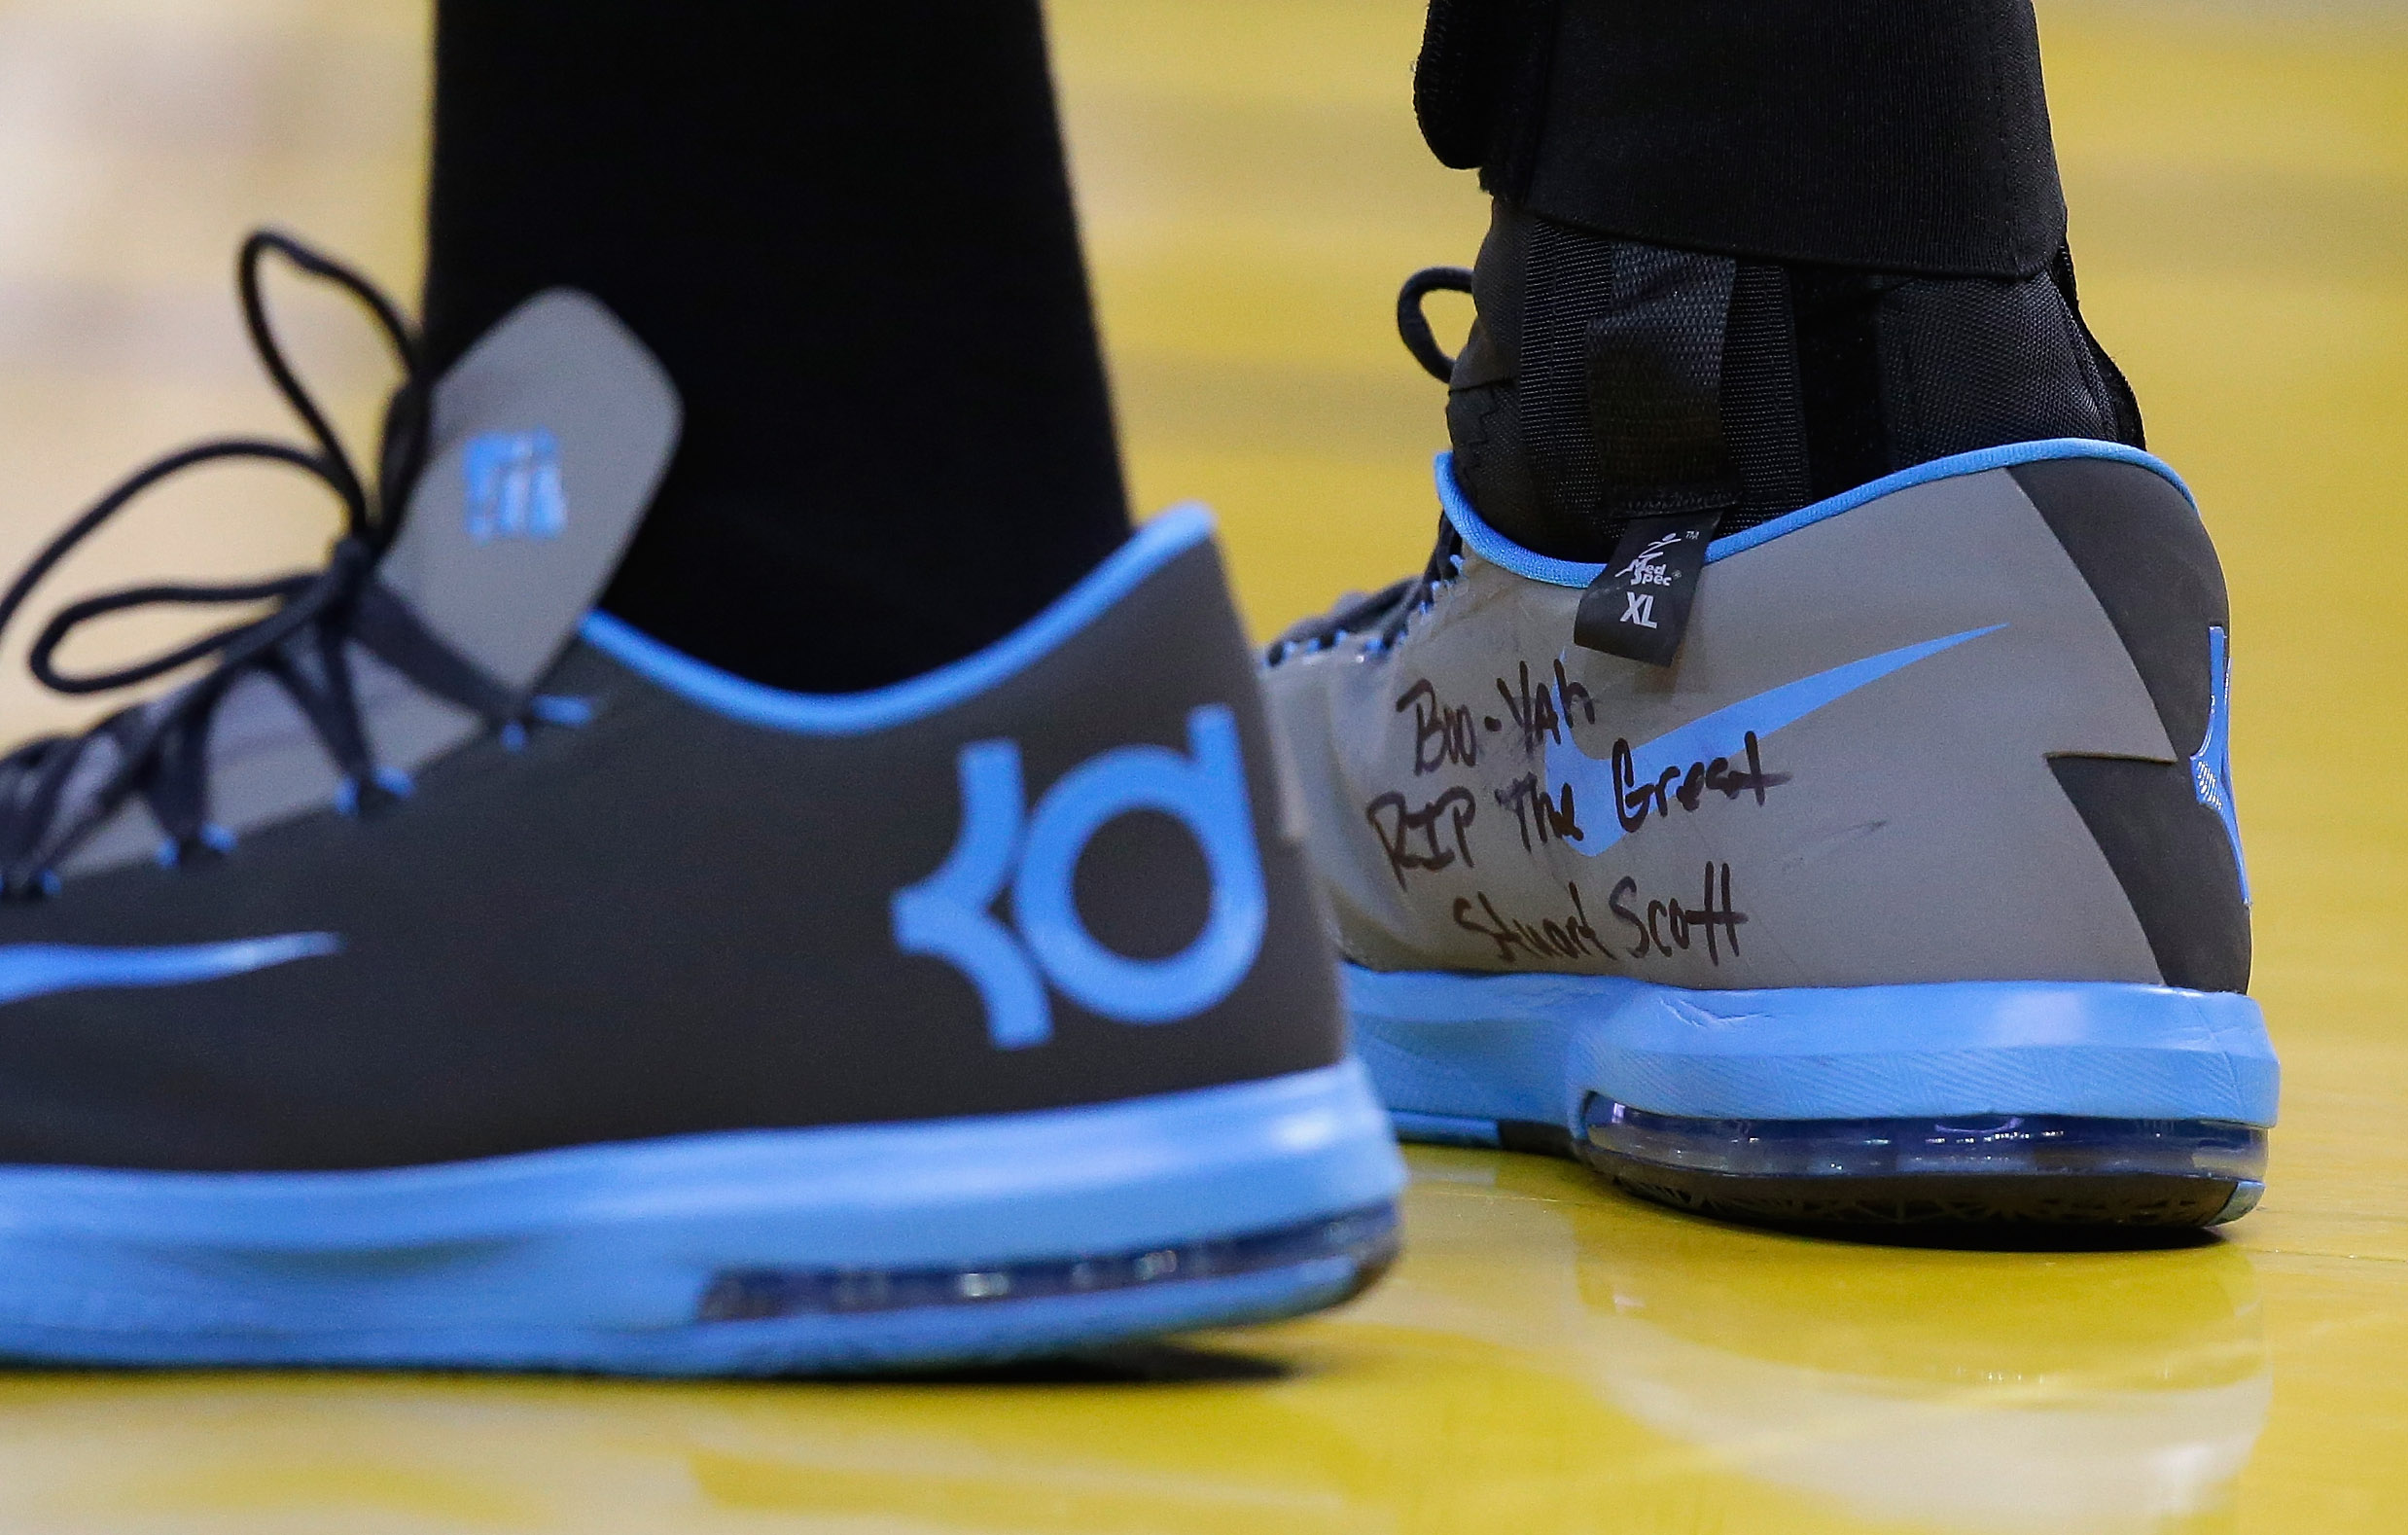 """sale retailer f6be5 74ad4 When Stuart Scott died of cancer in early 2015, Kevin Durant scribed the  longtime ESPN broadcasters trademark phrase """"Boo-Yah"""" above the words """"RIP  The ..."""